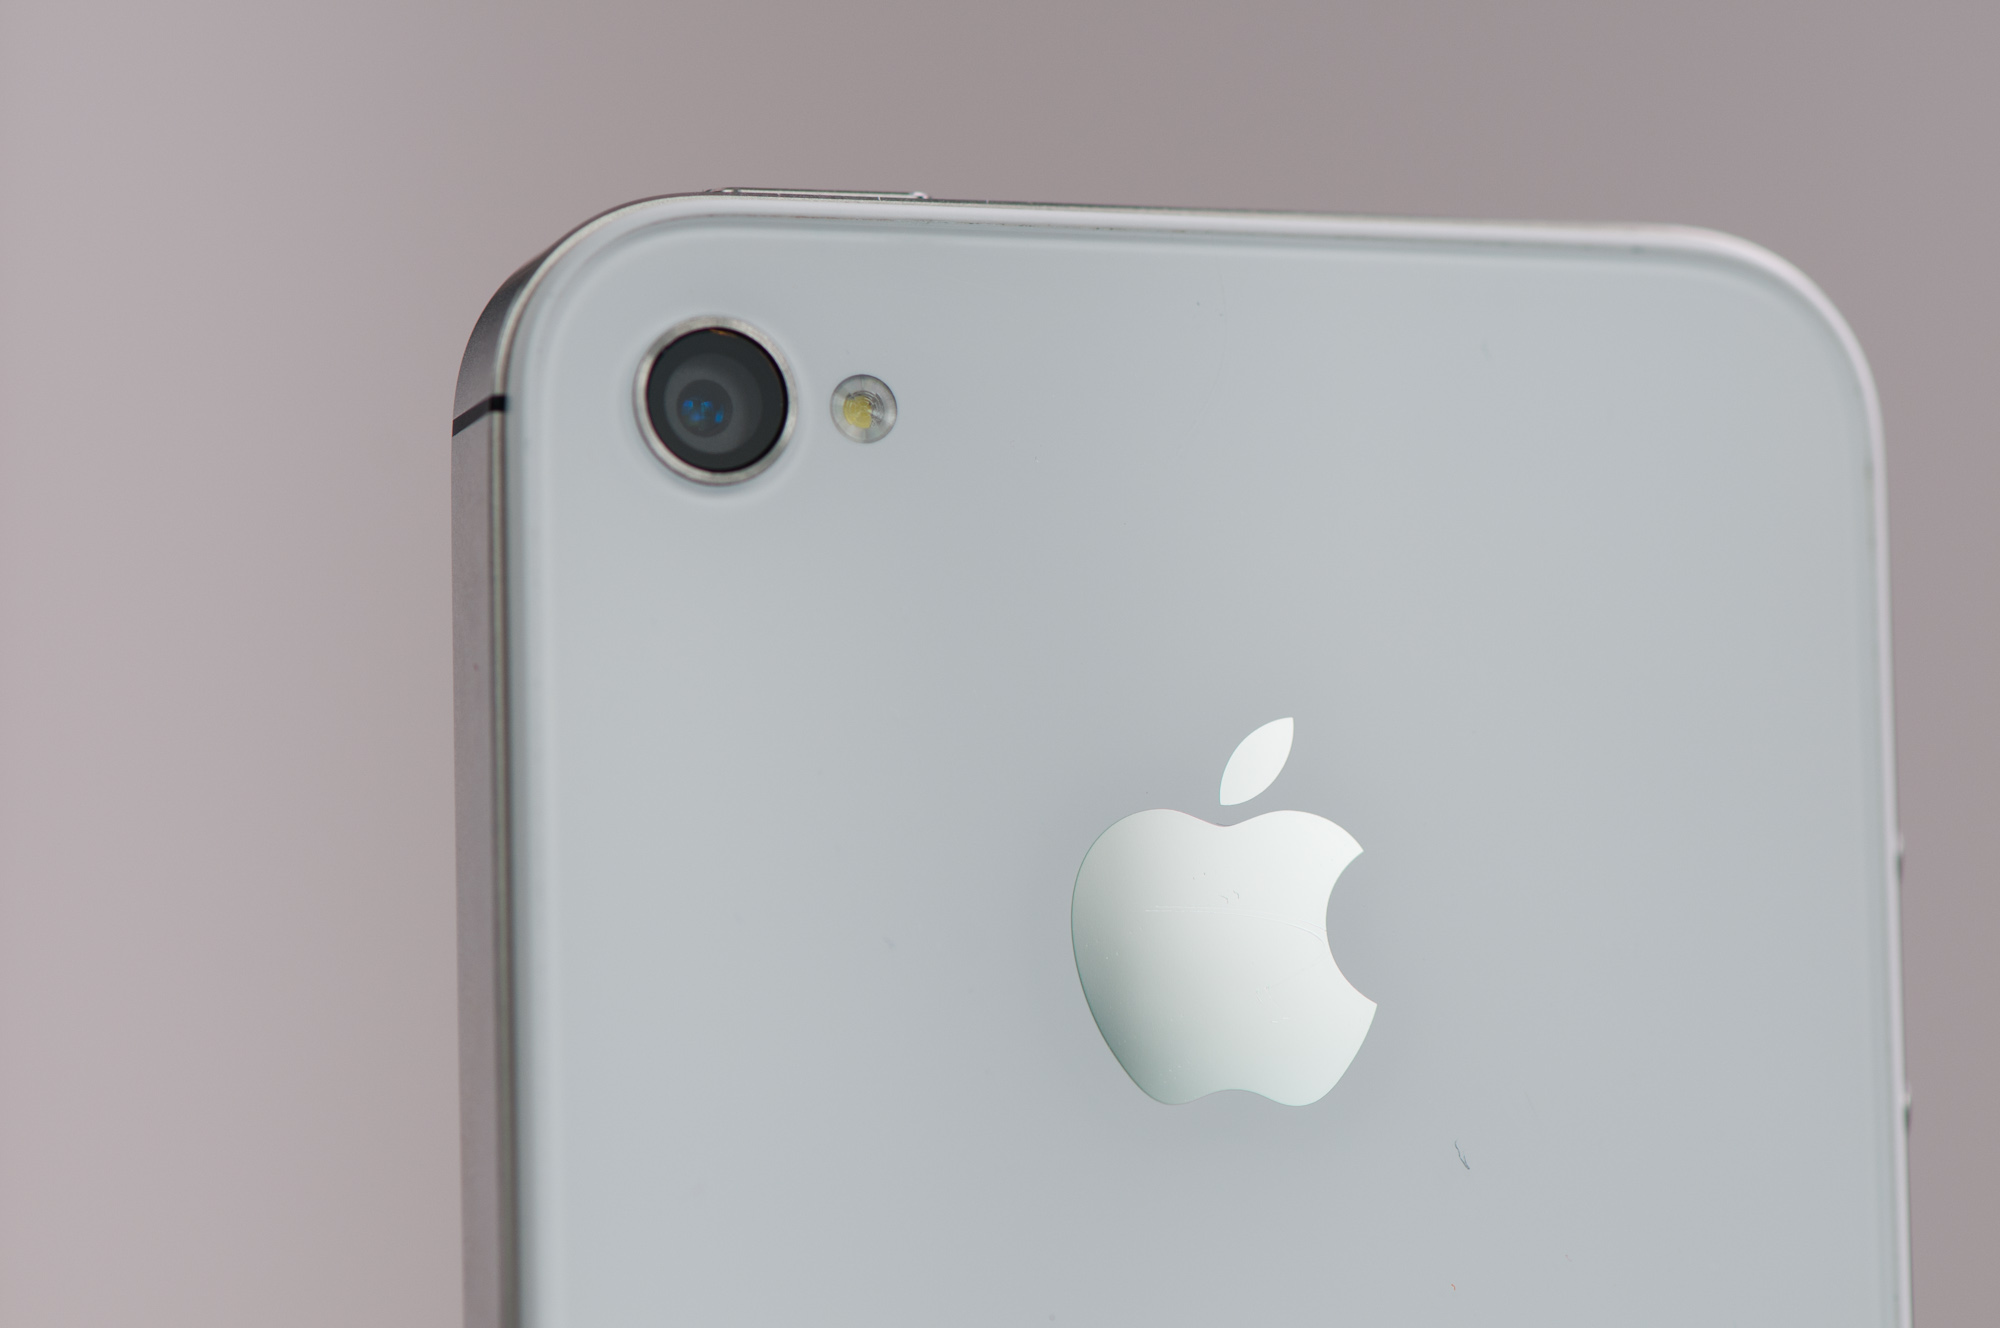 Camera Improvements - Apple iPhone 4S: Thoroughly Reviewed